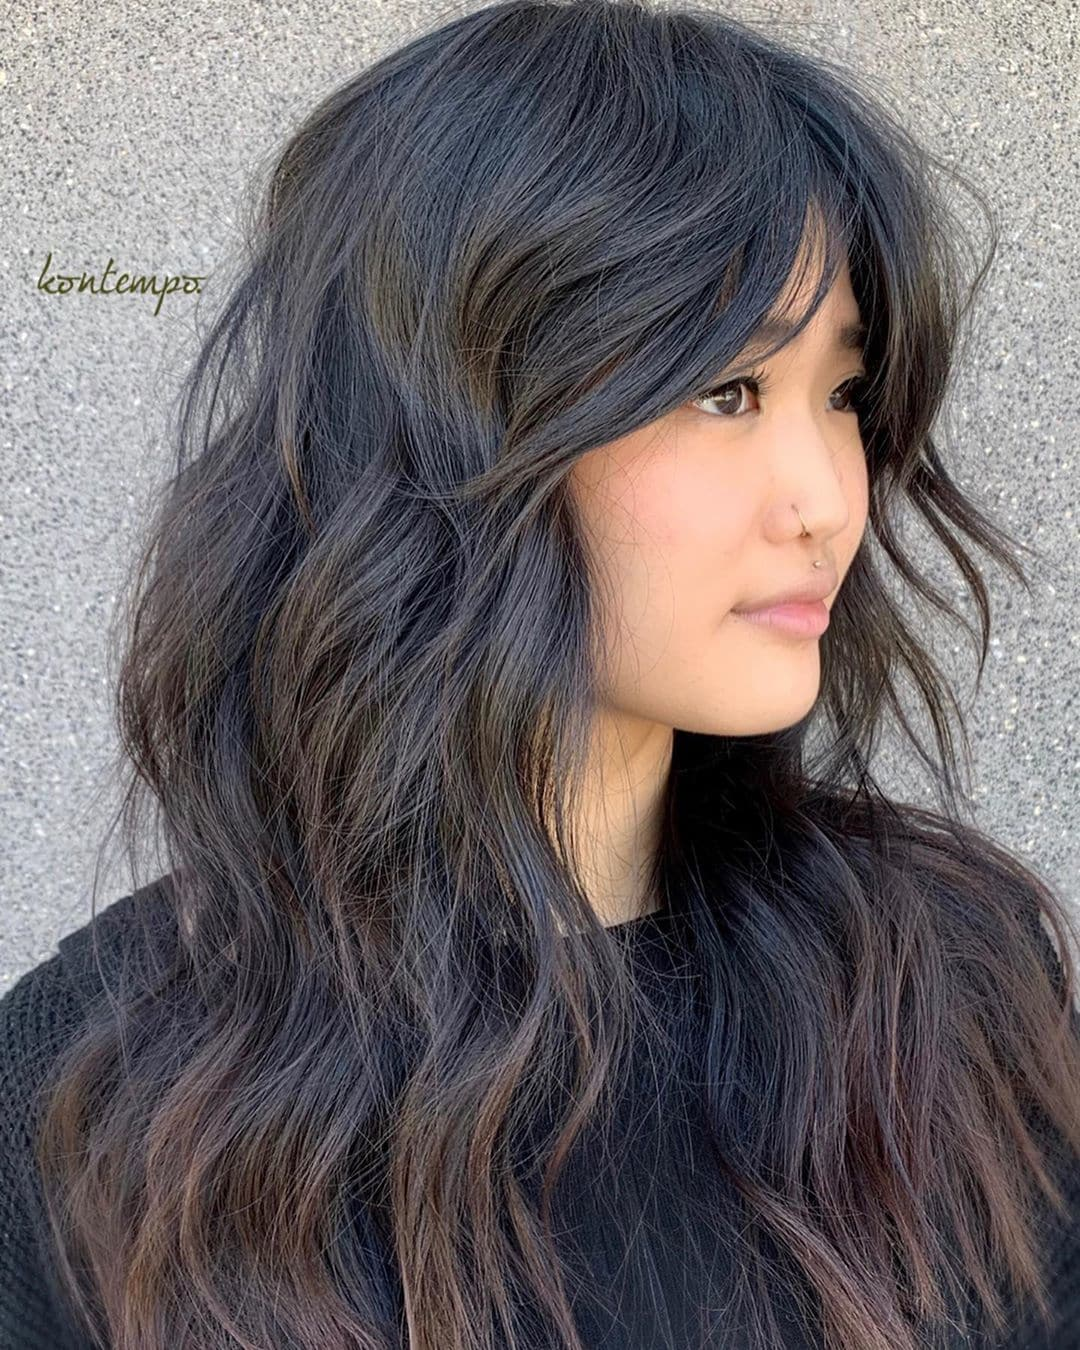 35 Trending Asian Hairstyles For Women 2020 Guide